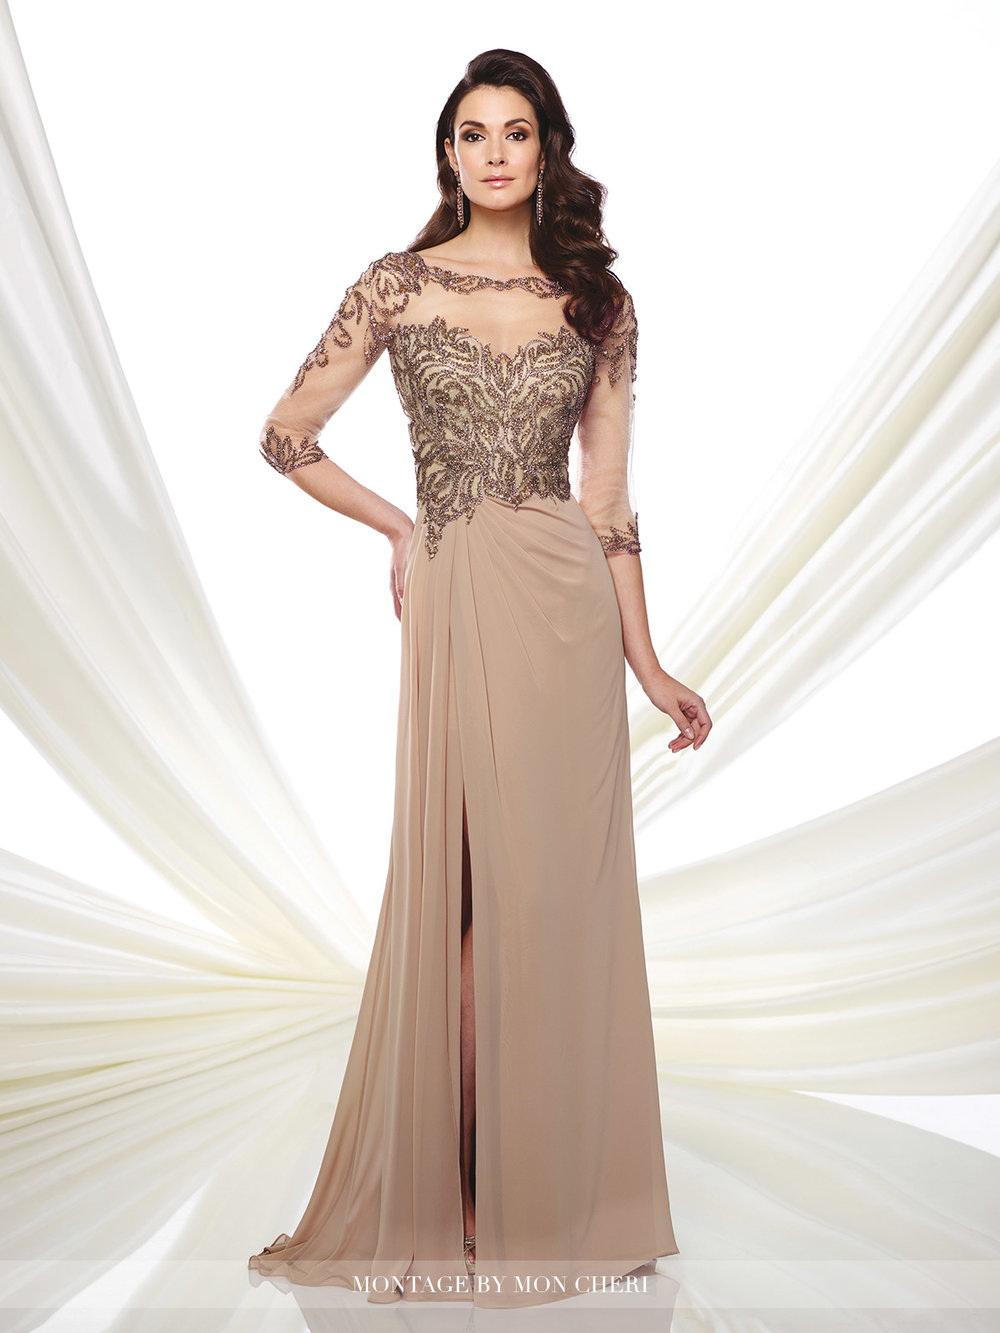 216969_mother_of_the_bride_dresses.jpg